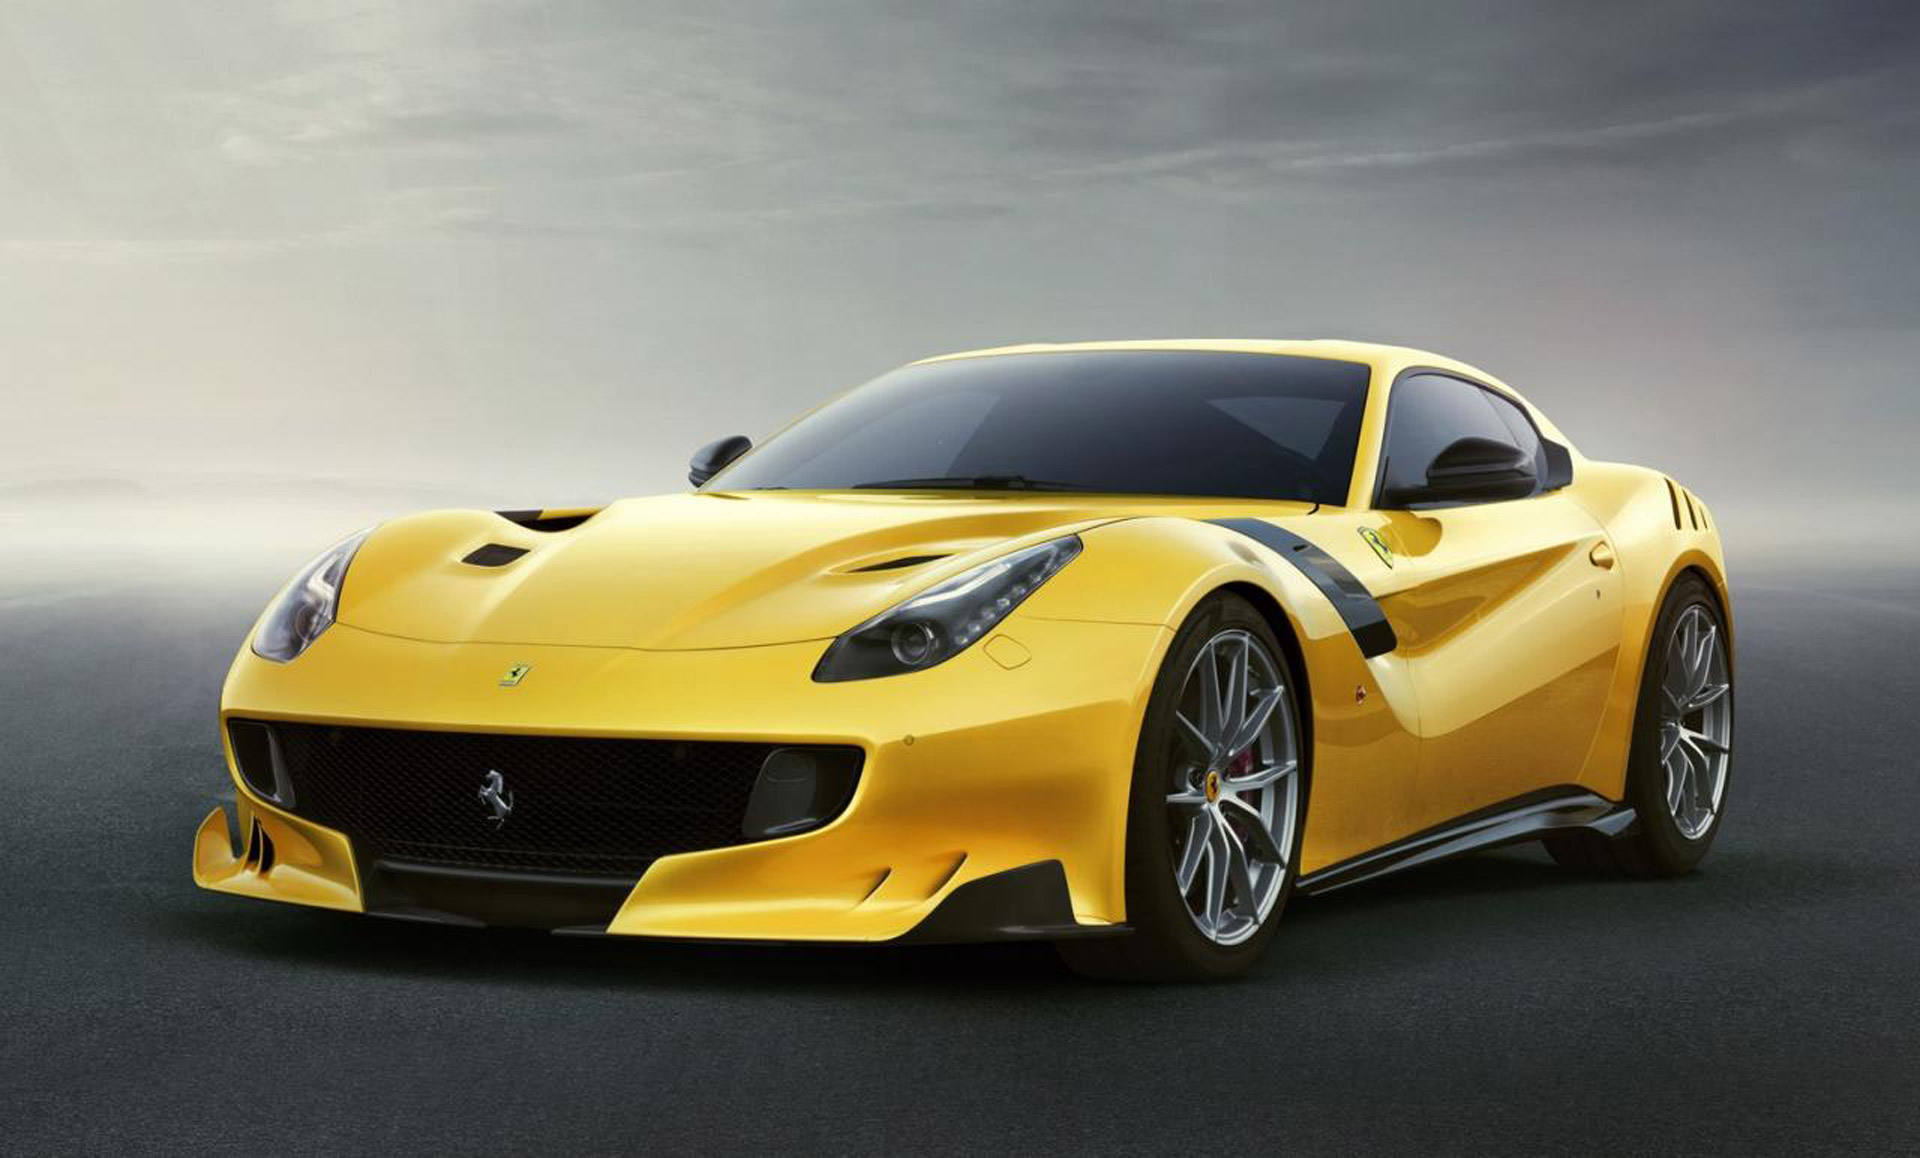 2016 ferrari f12 berlinetta review ratings specs prices and photos. Cars Review. Best American Auto & Cars Review